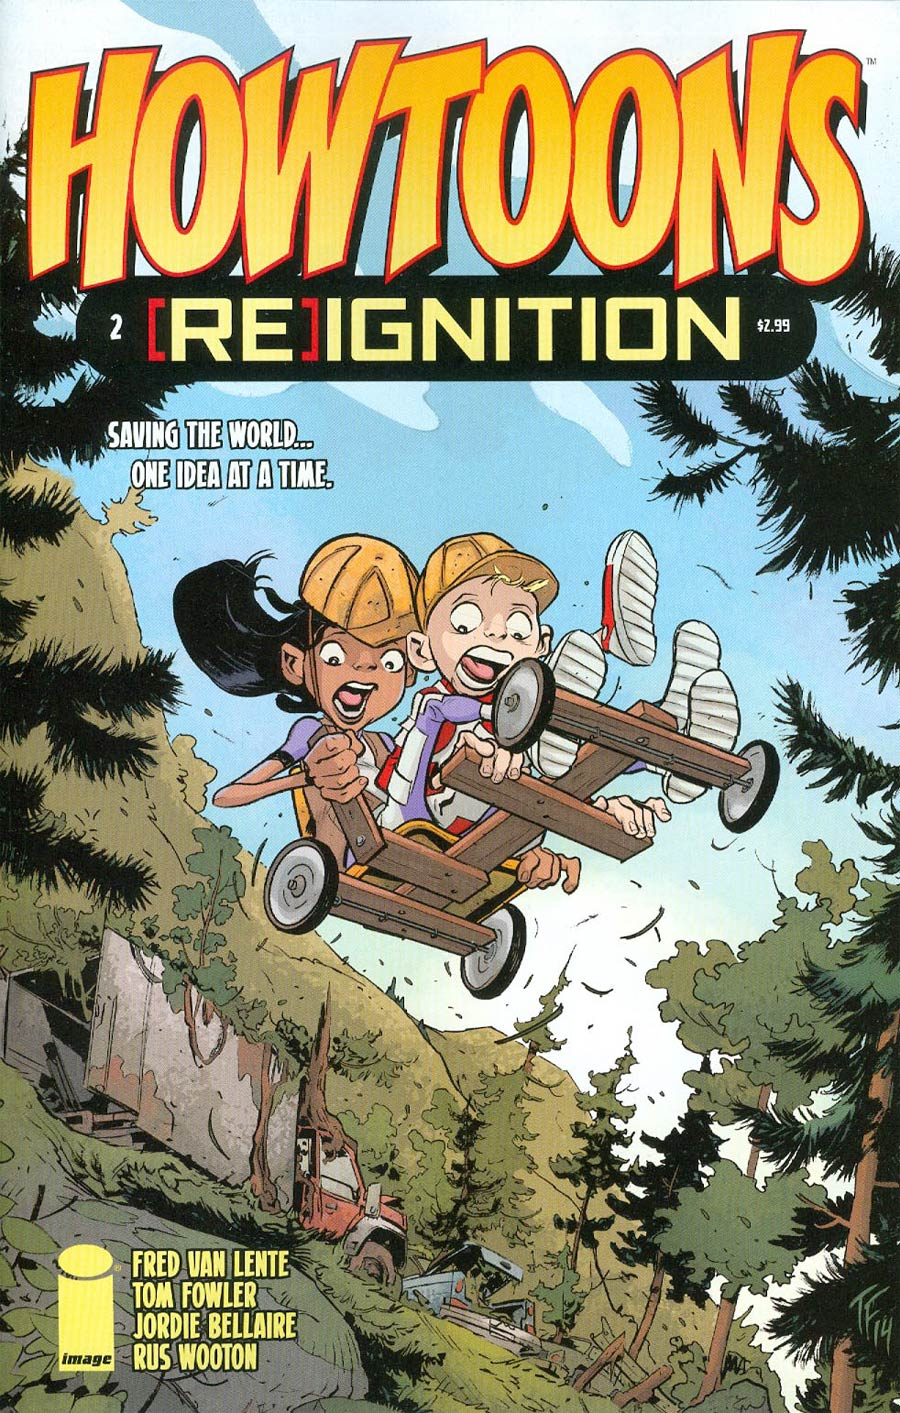 Howtoons (Re)Ignition #2